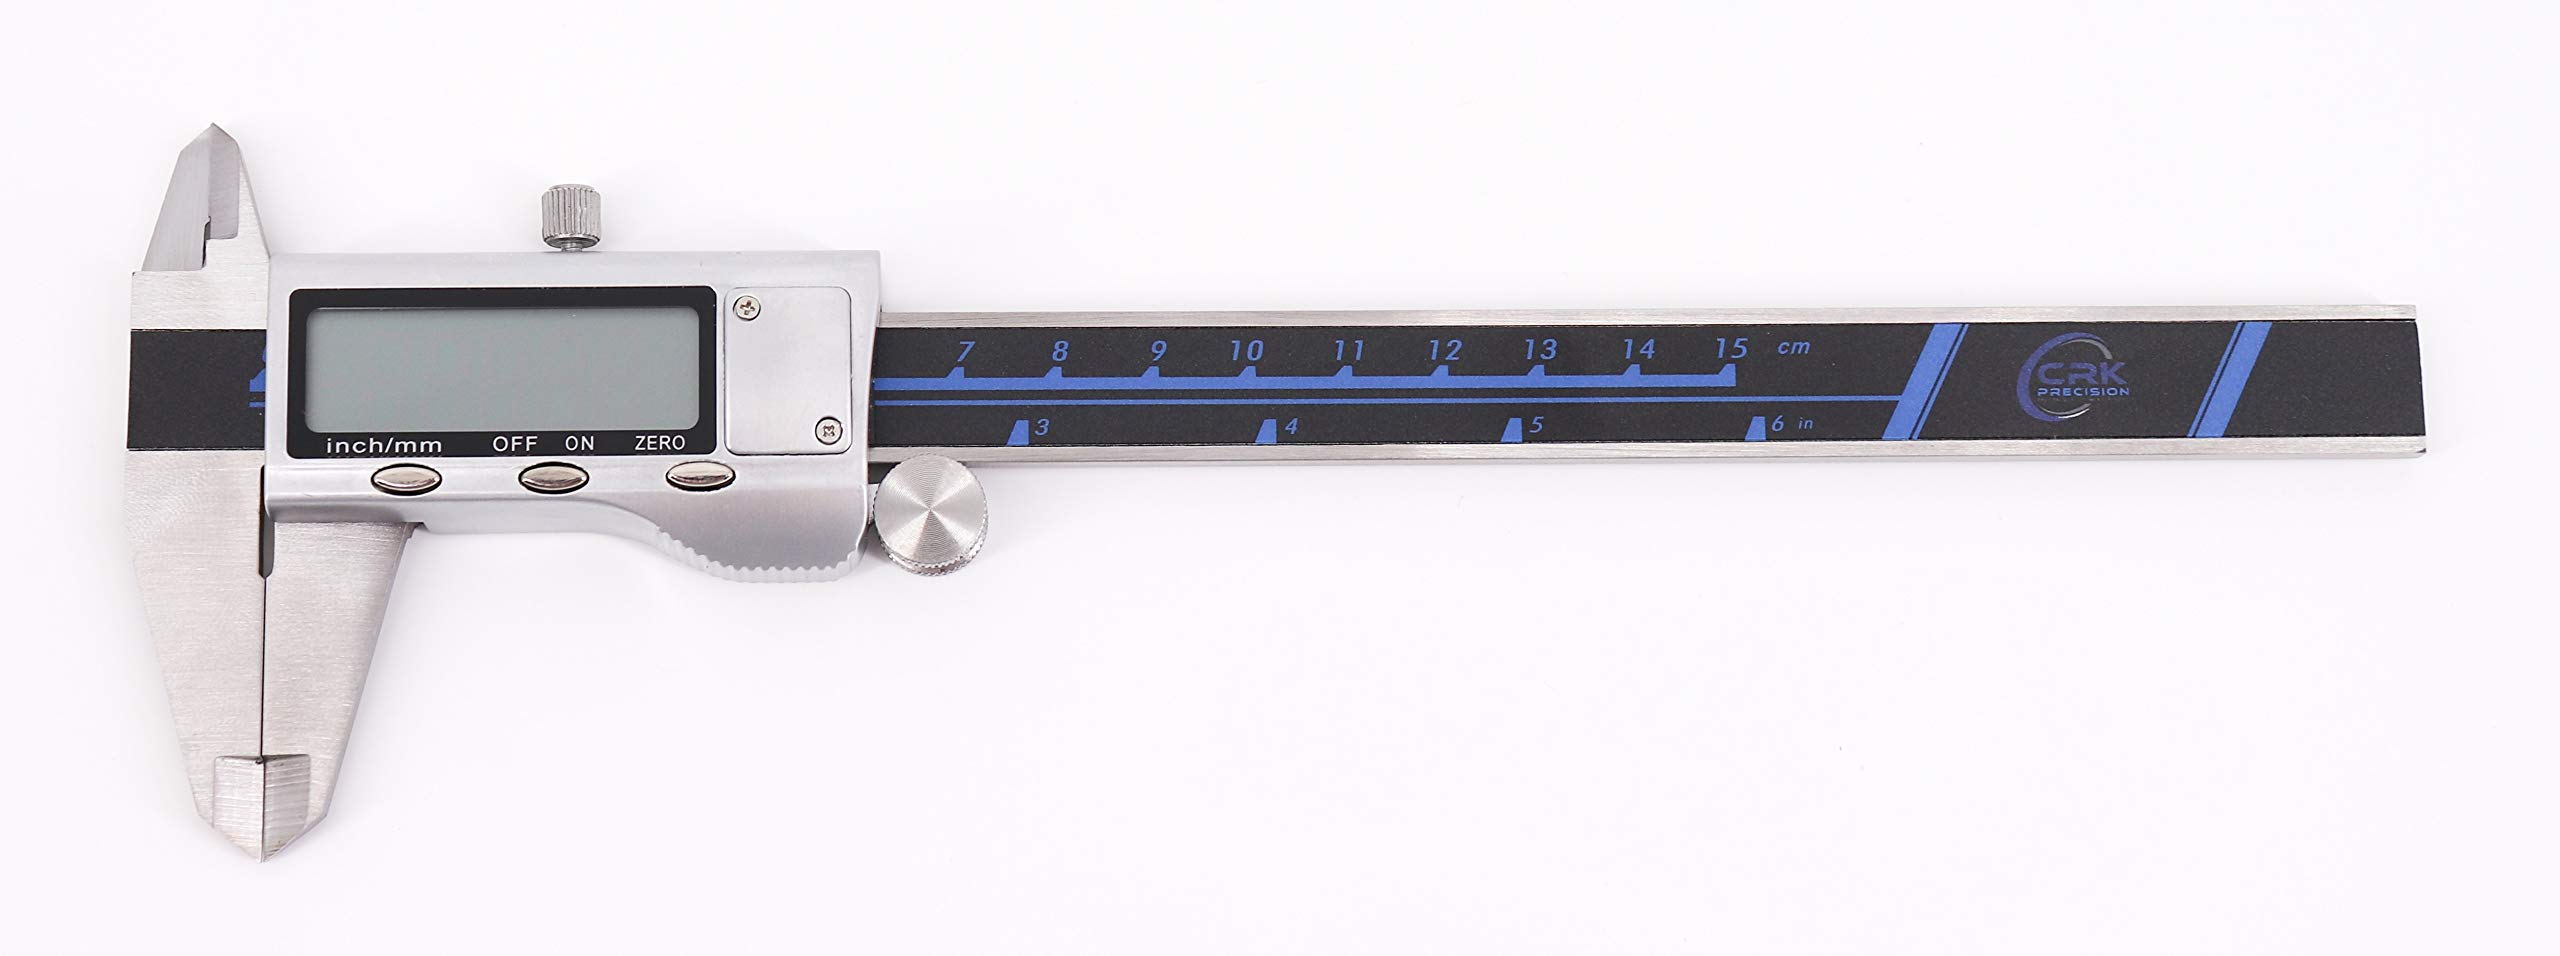 Digital Caliper | 0-6 Inch Stainless Steel Electronic Digital Caliper | English Standard and Metric Conversion | Full Metal Jacket by CRK Precision